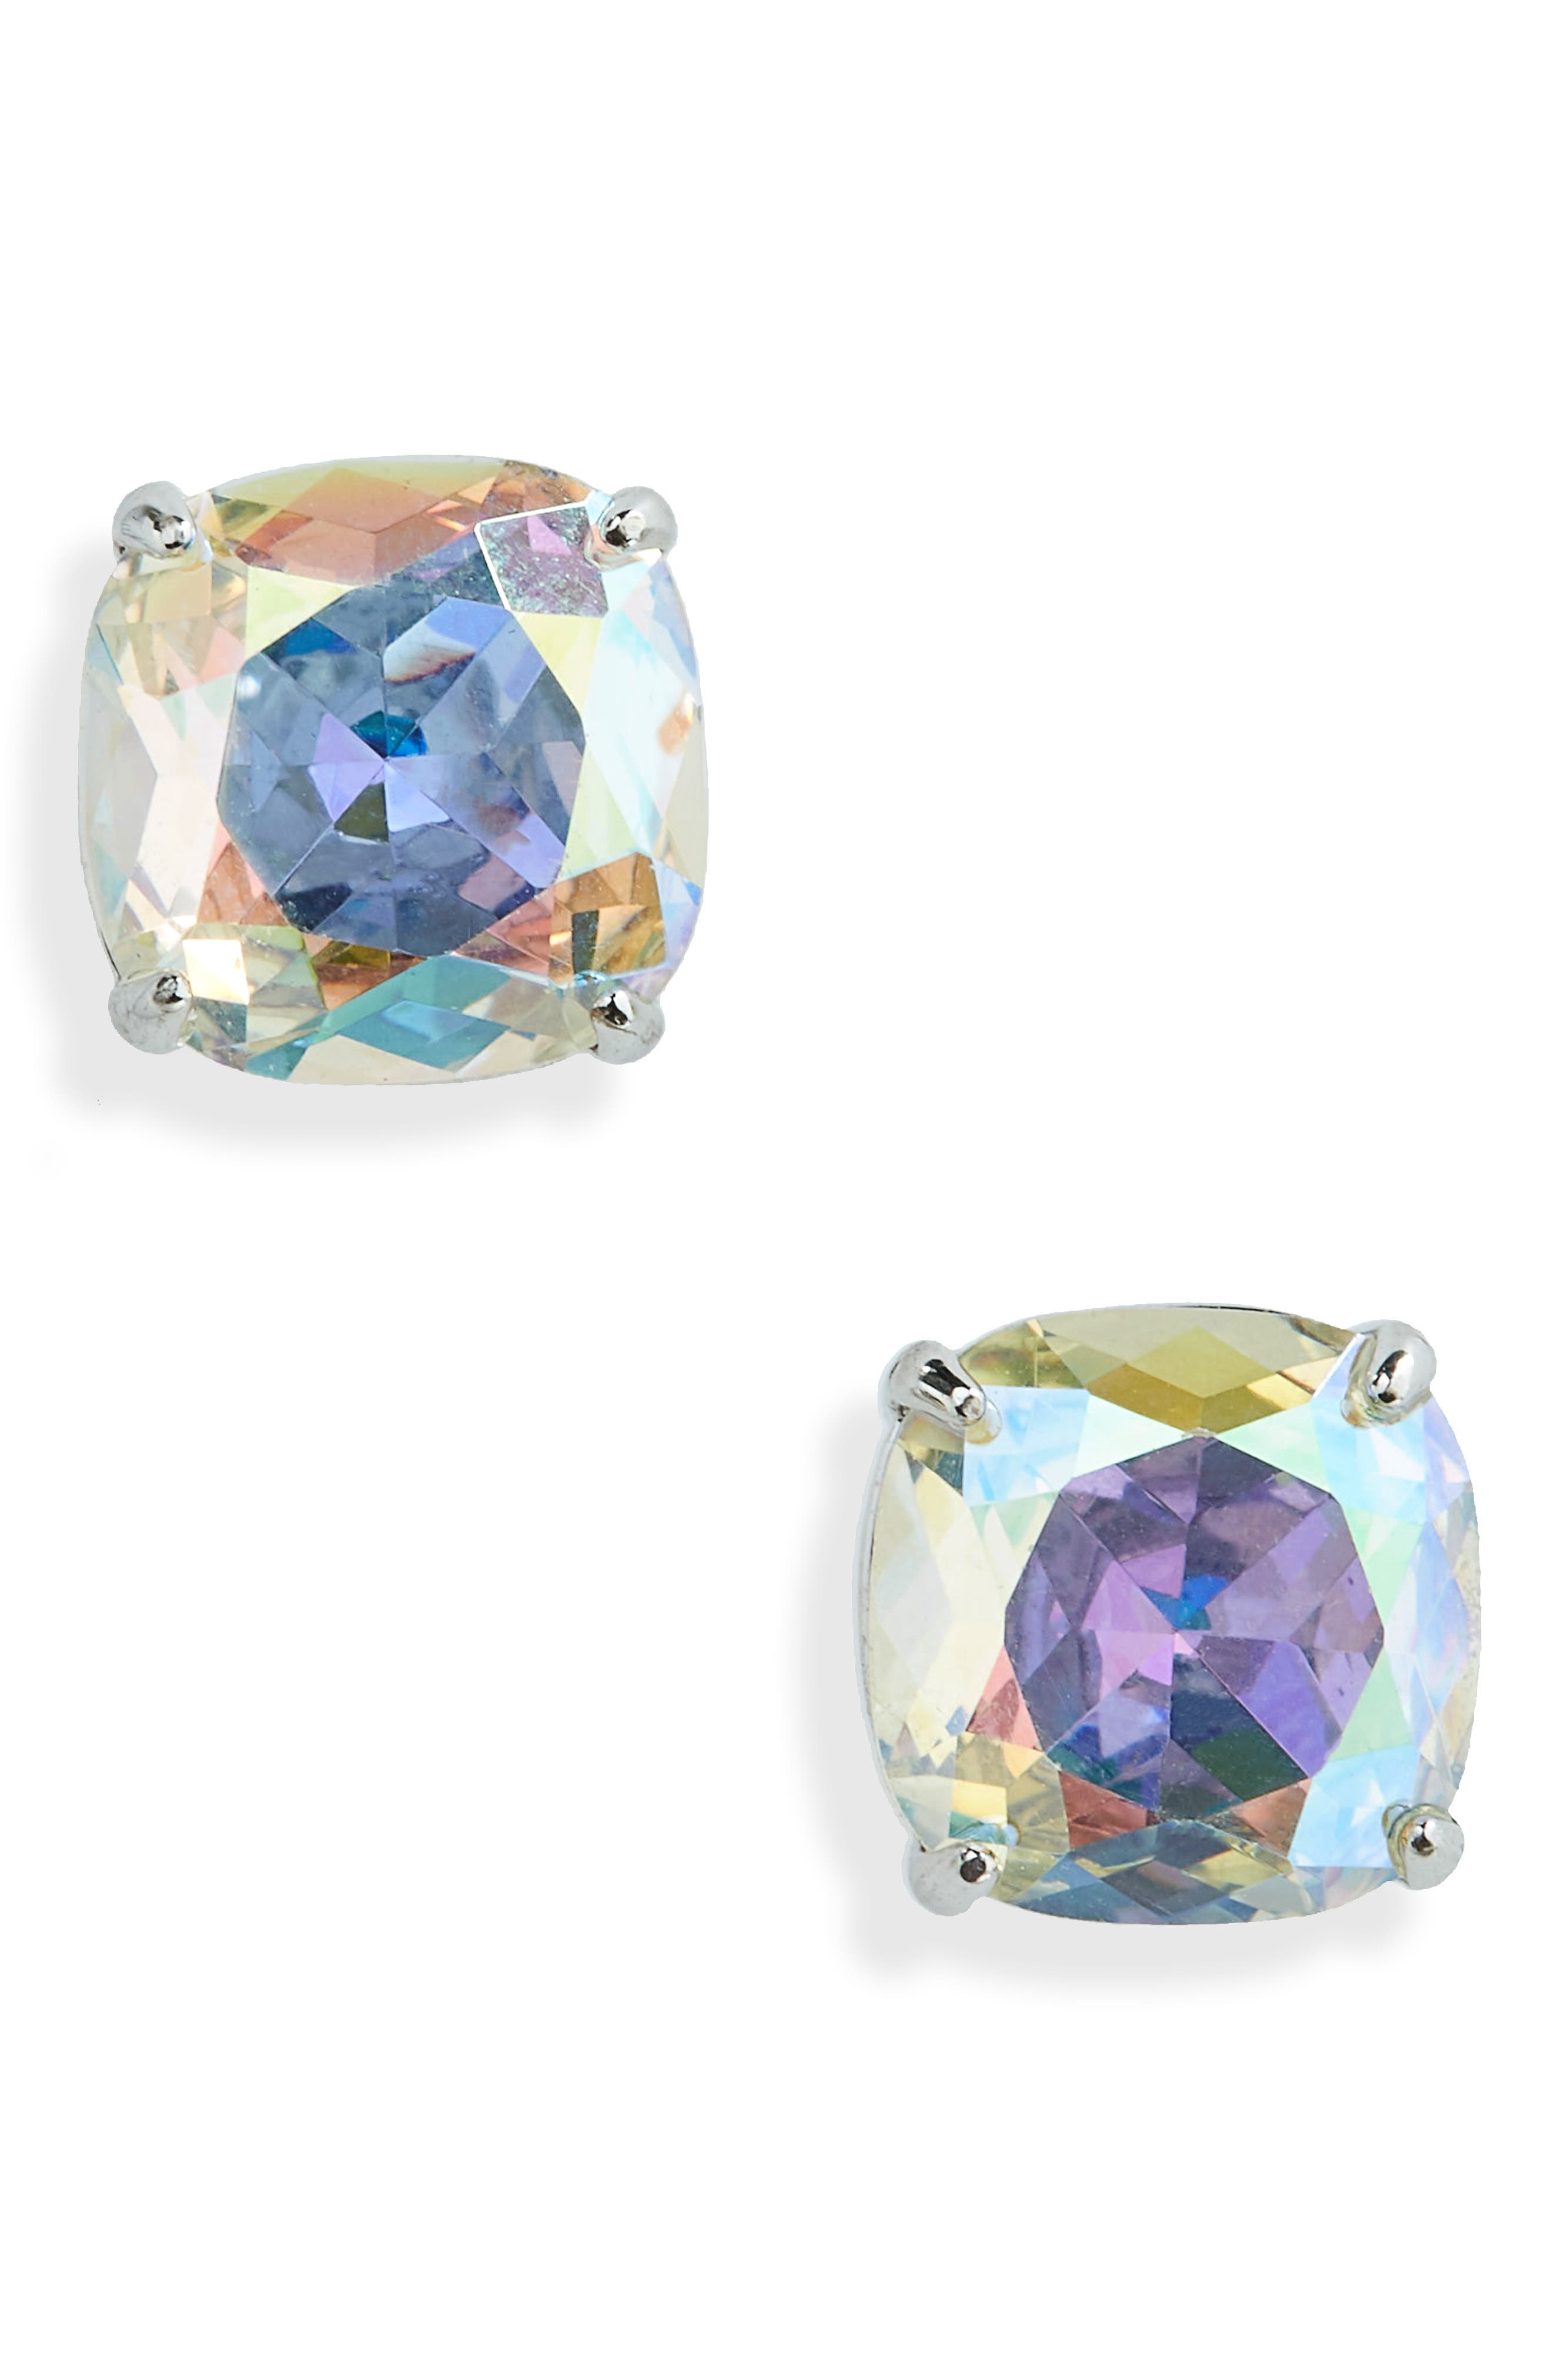 KATE SPADE NEW YORK, mini small square semiprecious stone stud earrings, Main thumbnail 1, color, CRYSTAL AB/ SILVER